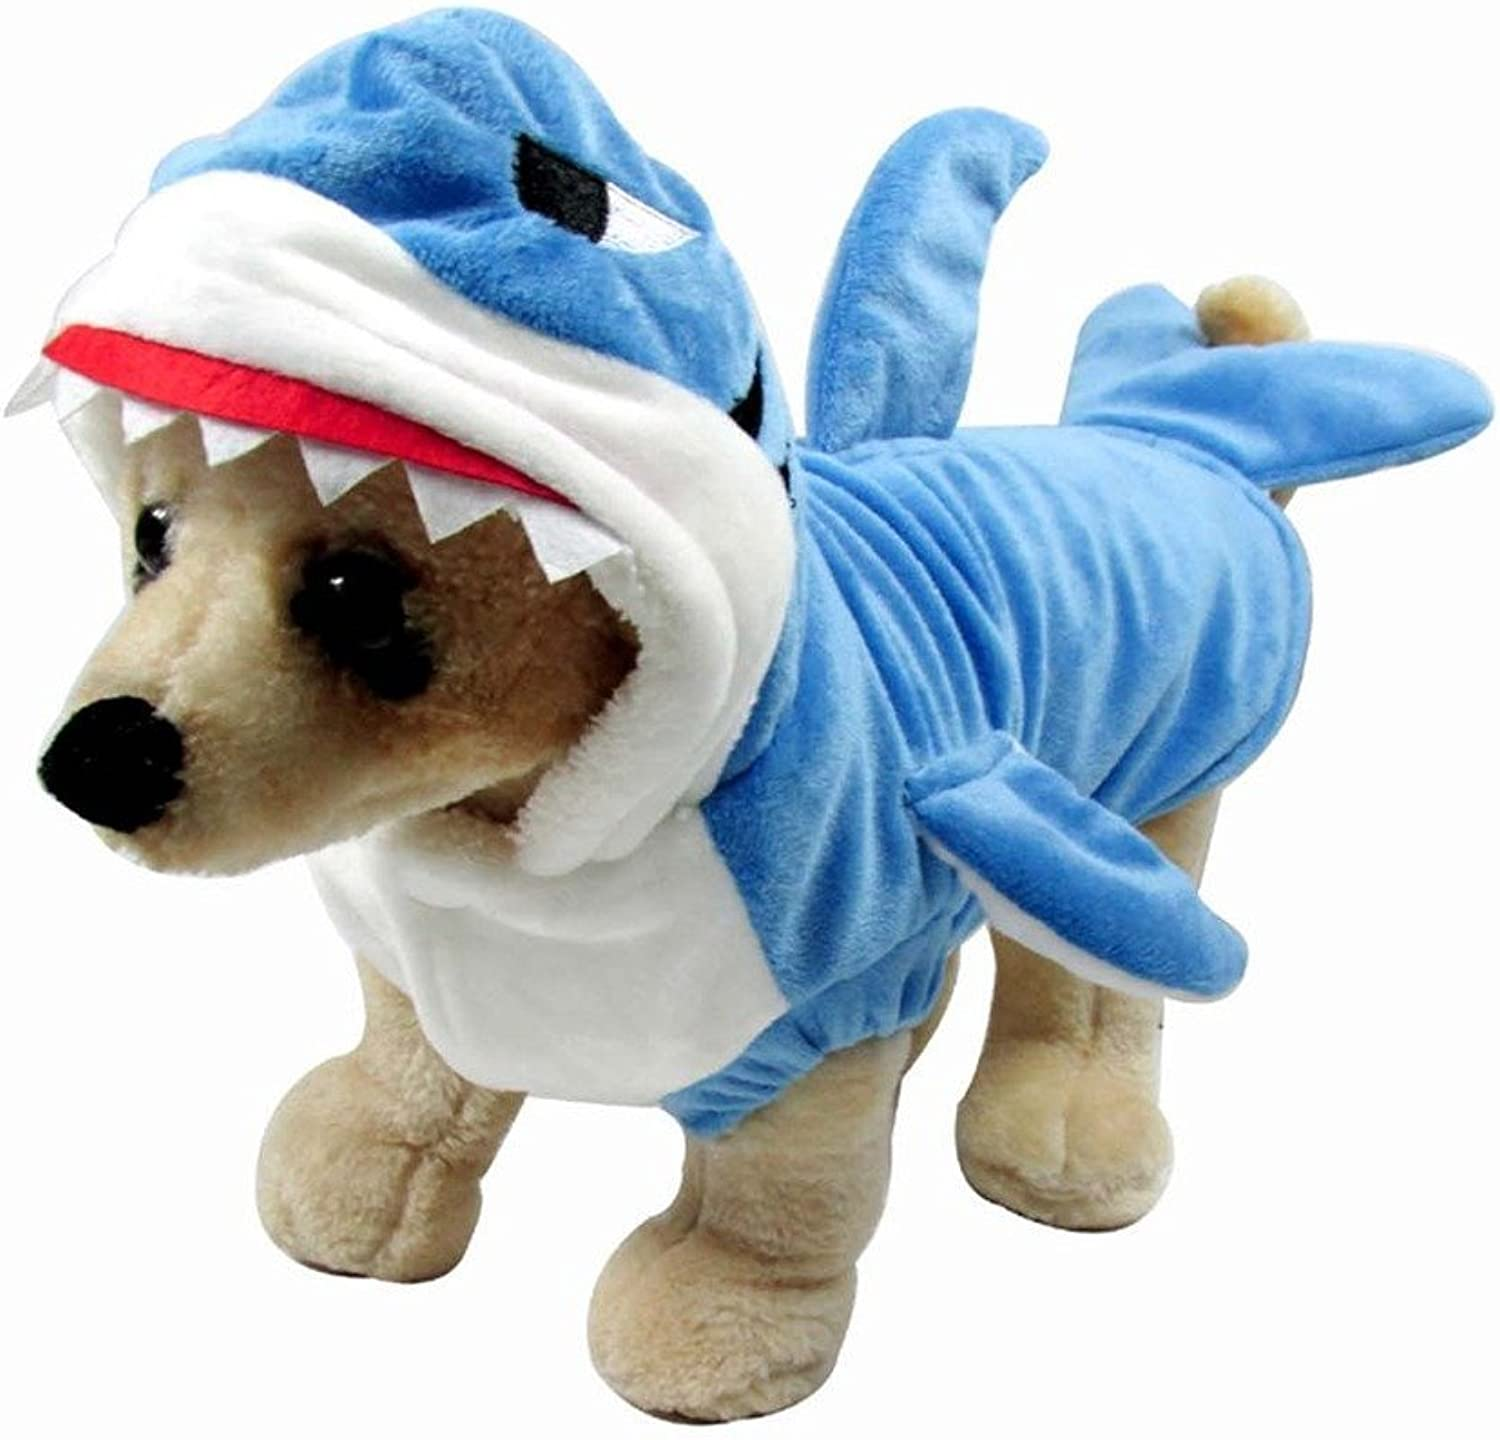 Mogoko Funny Dog Cat Shark Costumes, Pet Halloween Christmas Cosplay Dress, Adorable bluee Shark Pet Costume,Animal Fleece Hoodie Warm Outfits Clothes (XXXL Size)